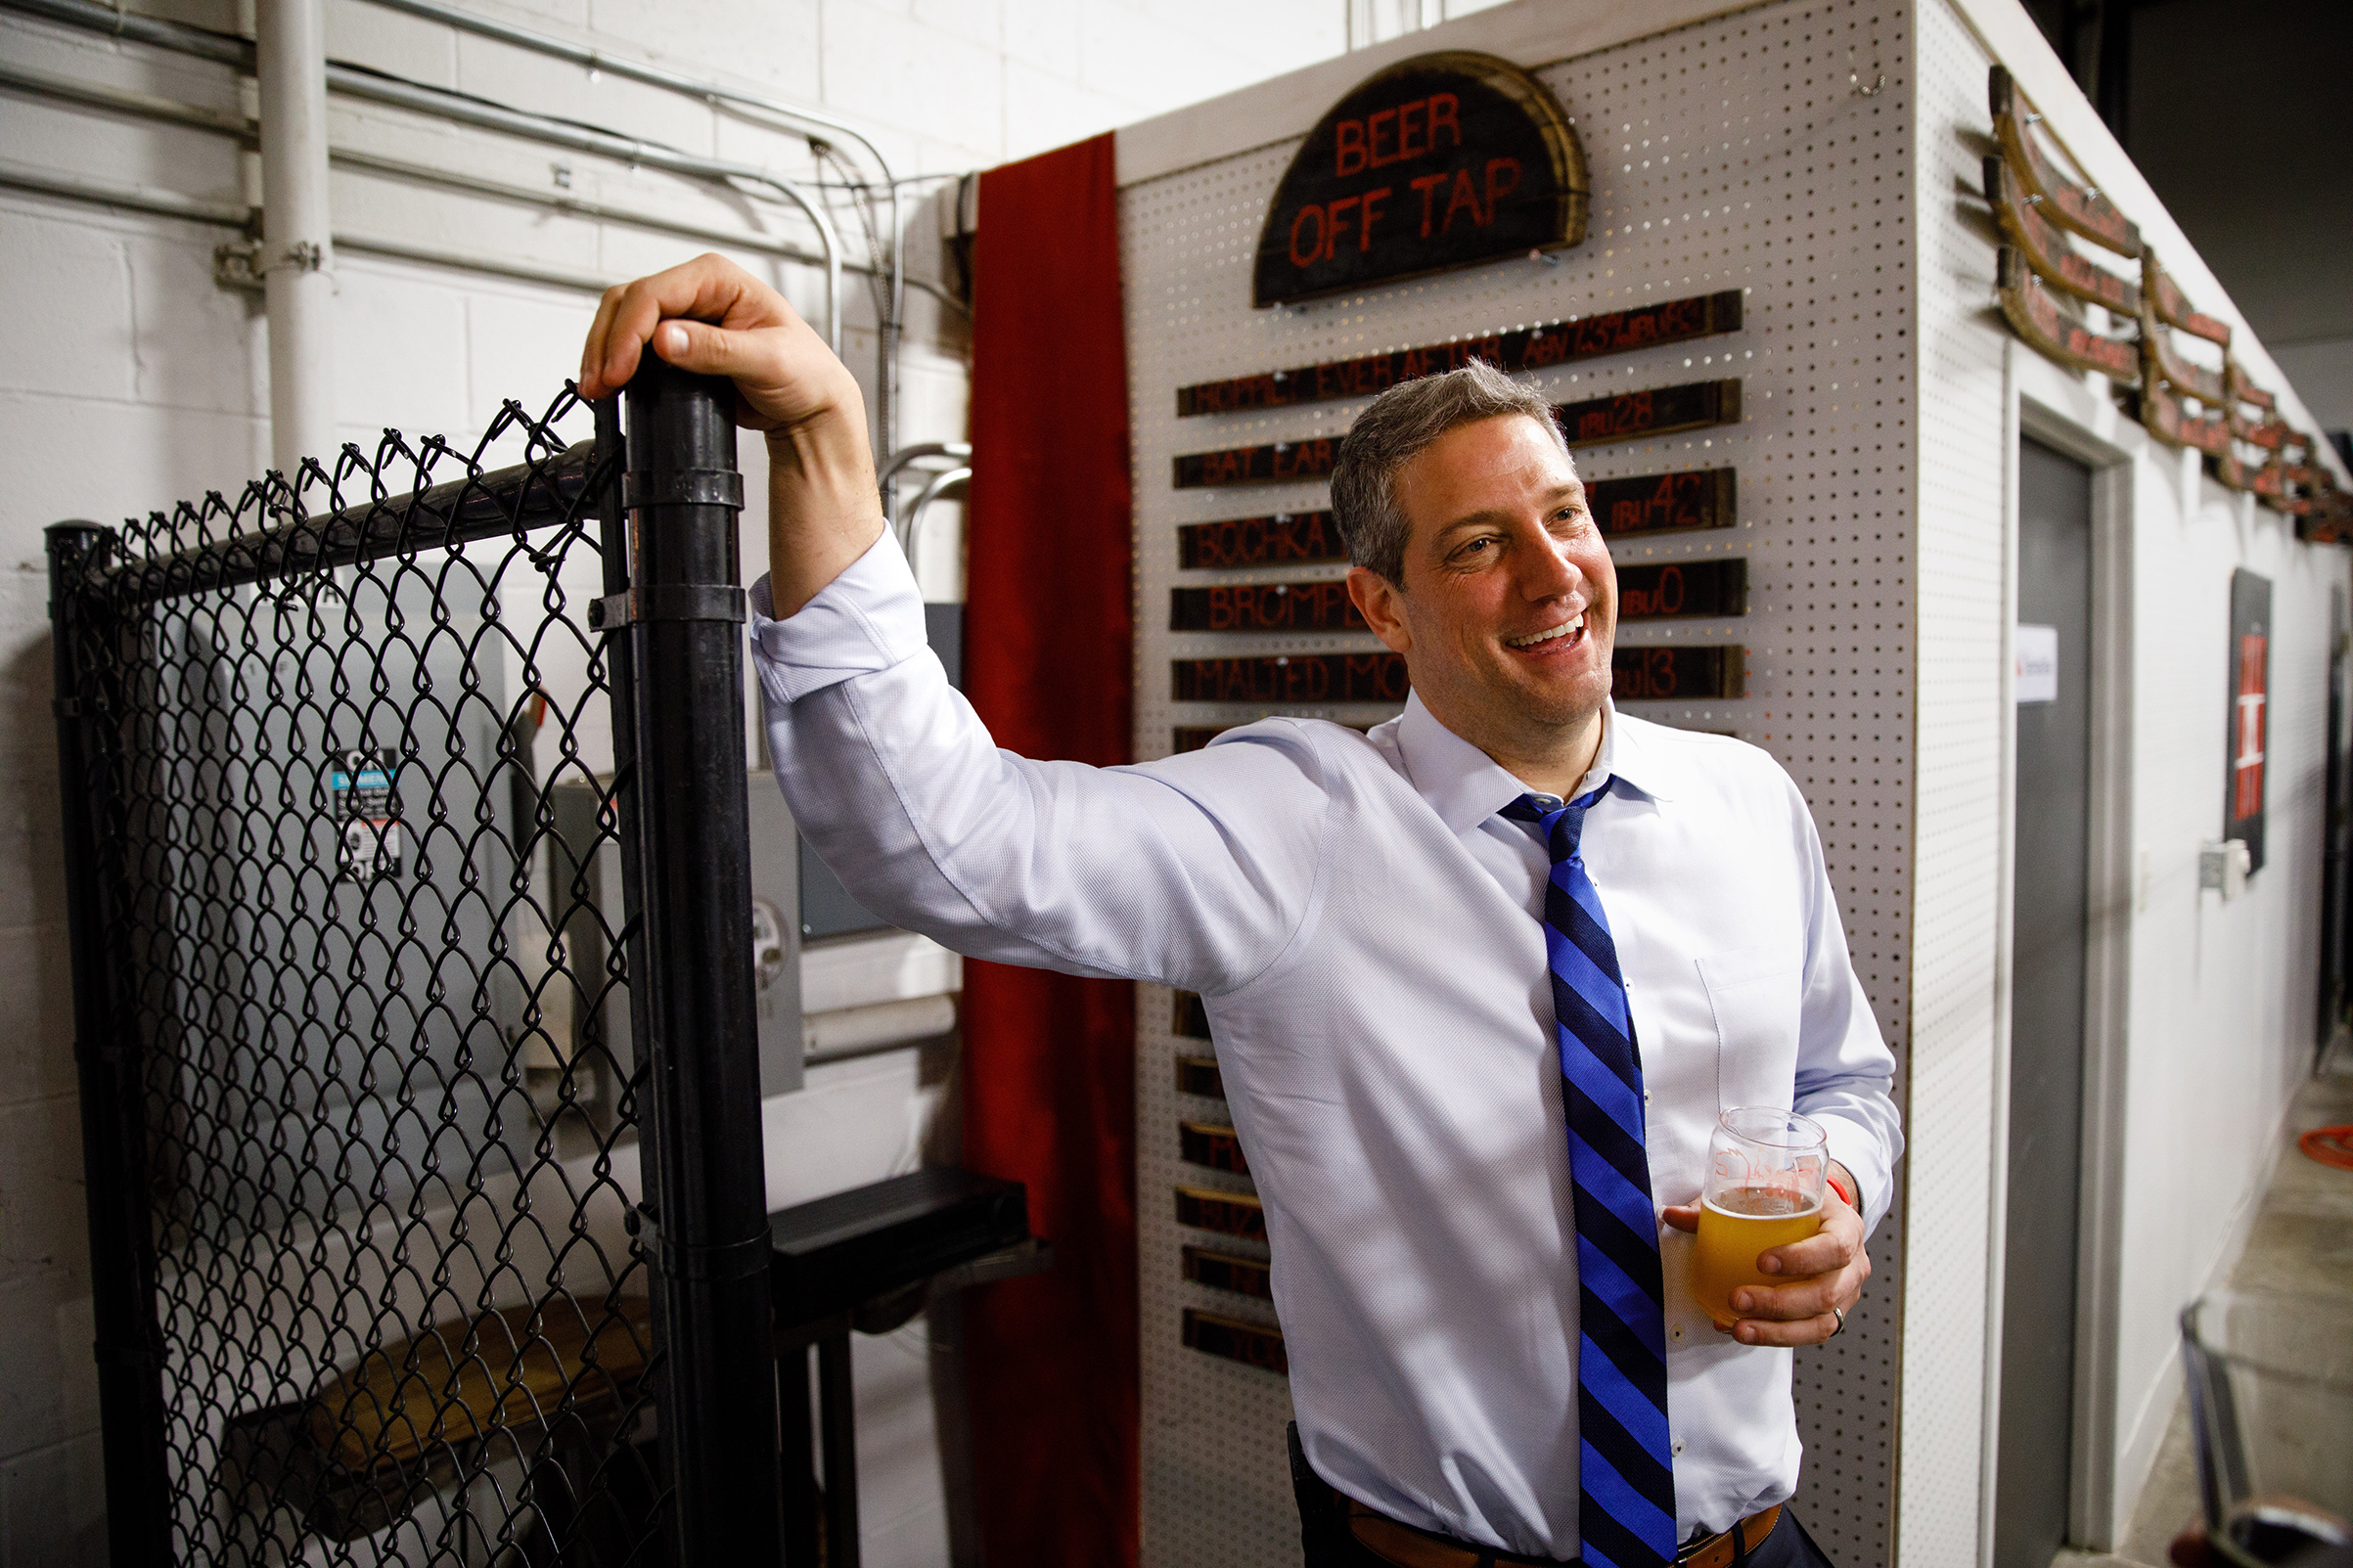 Democratic presidential candidate Tim Ryan after speaking to the Polk County Democrats during a campaign stop at Fox Brewing in West Des Moines, Iowa, April 7